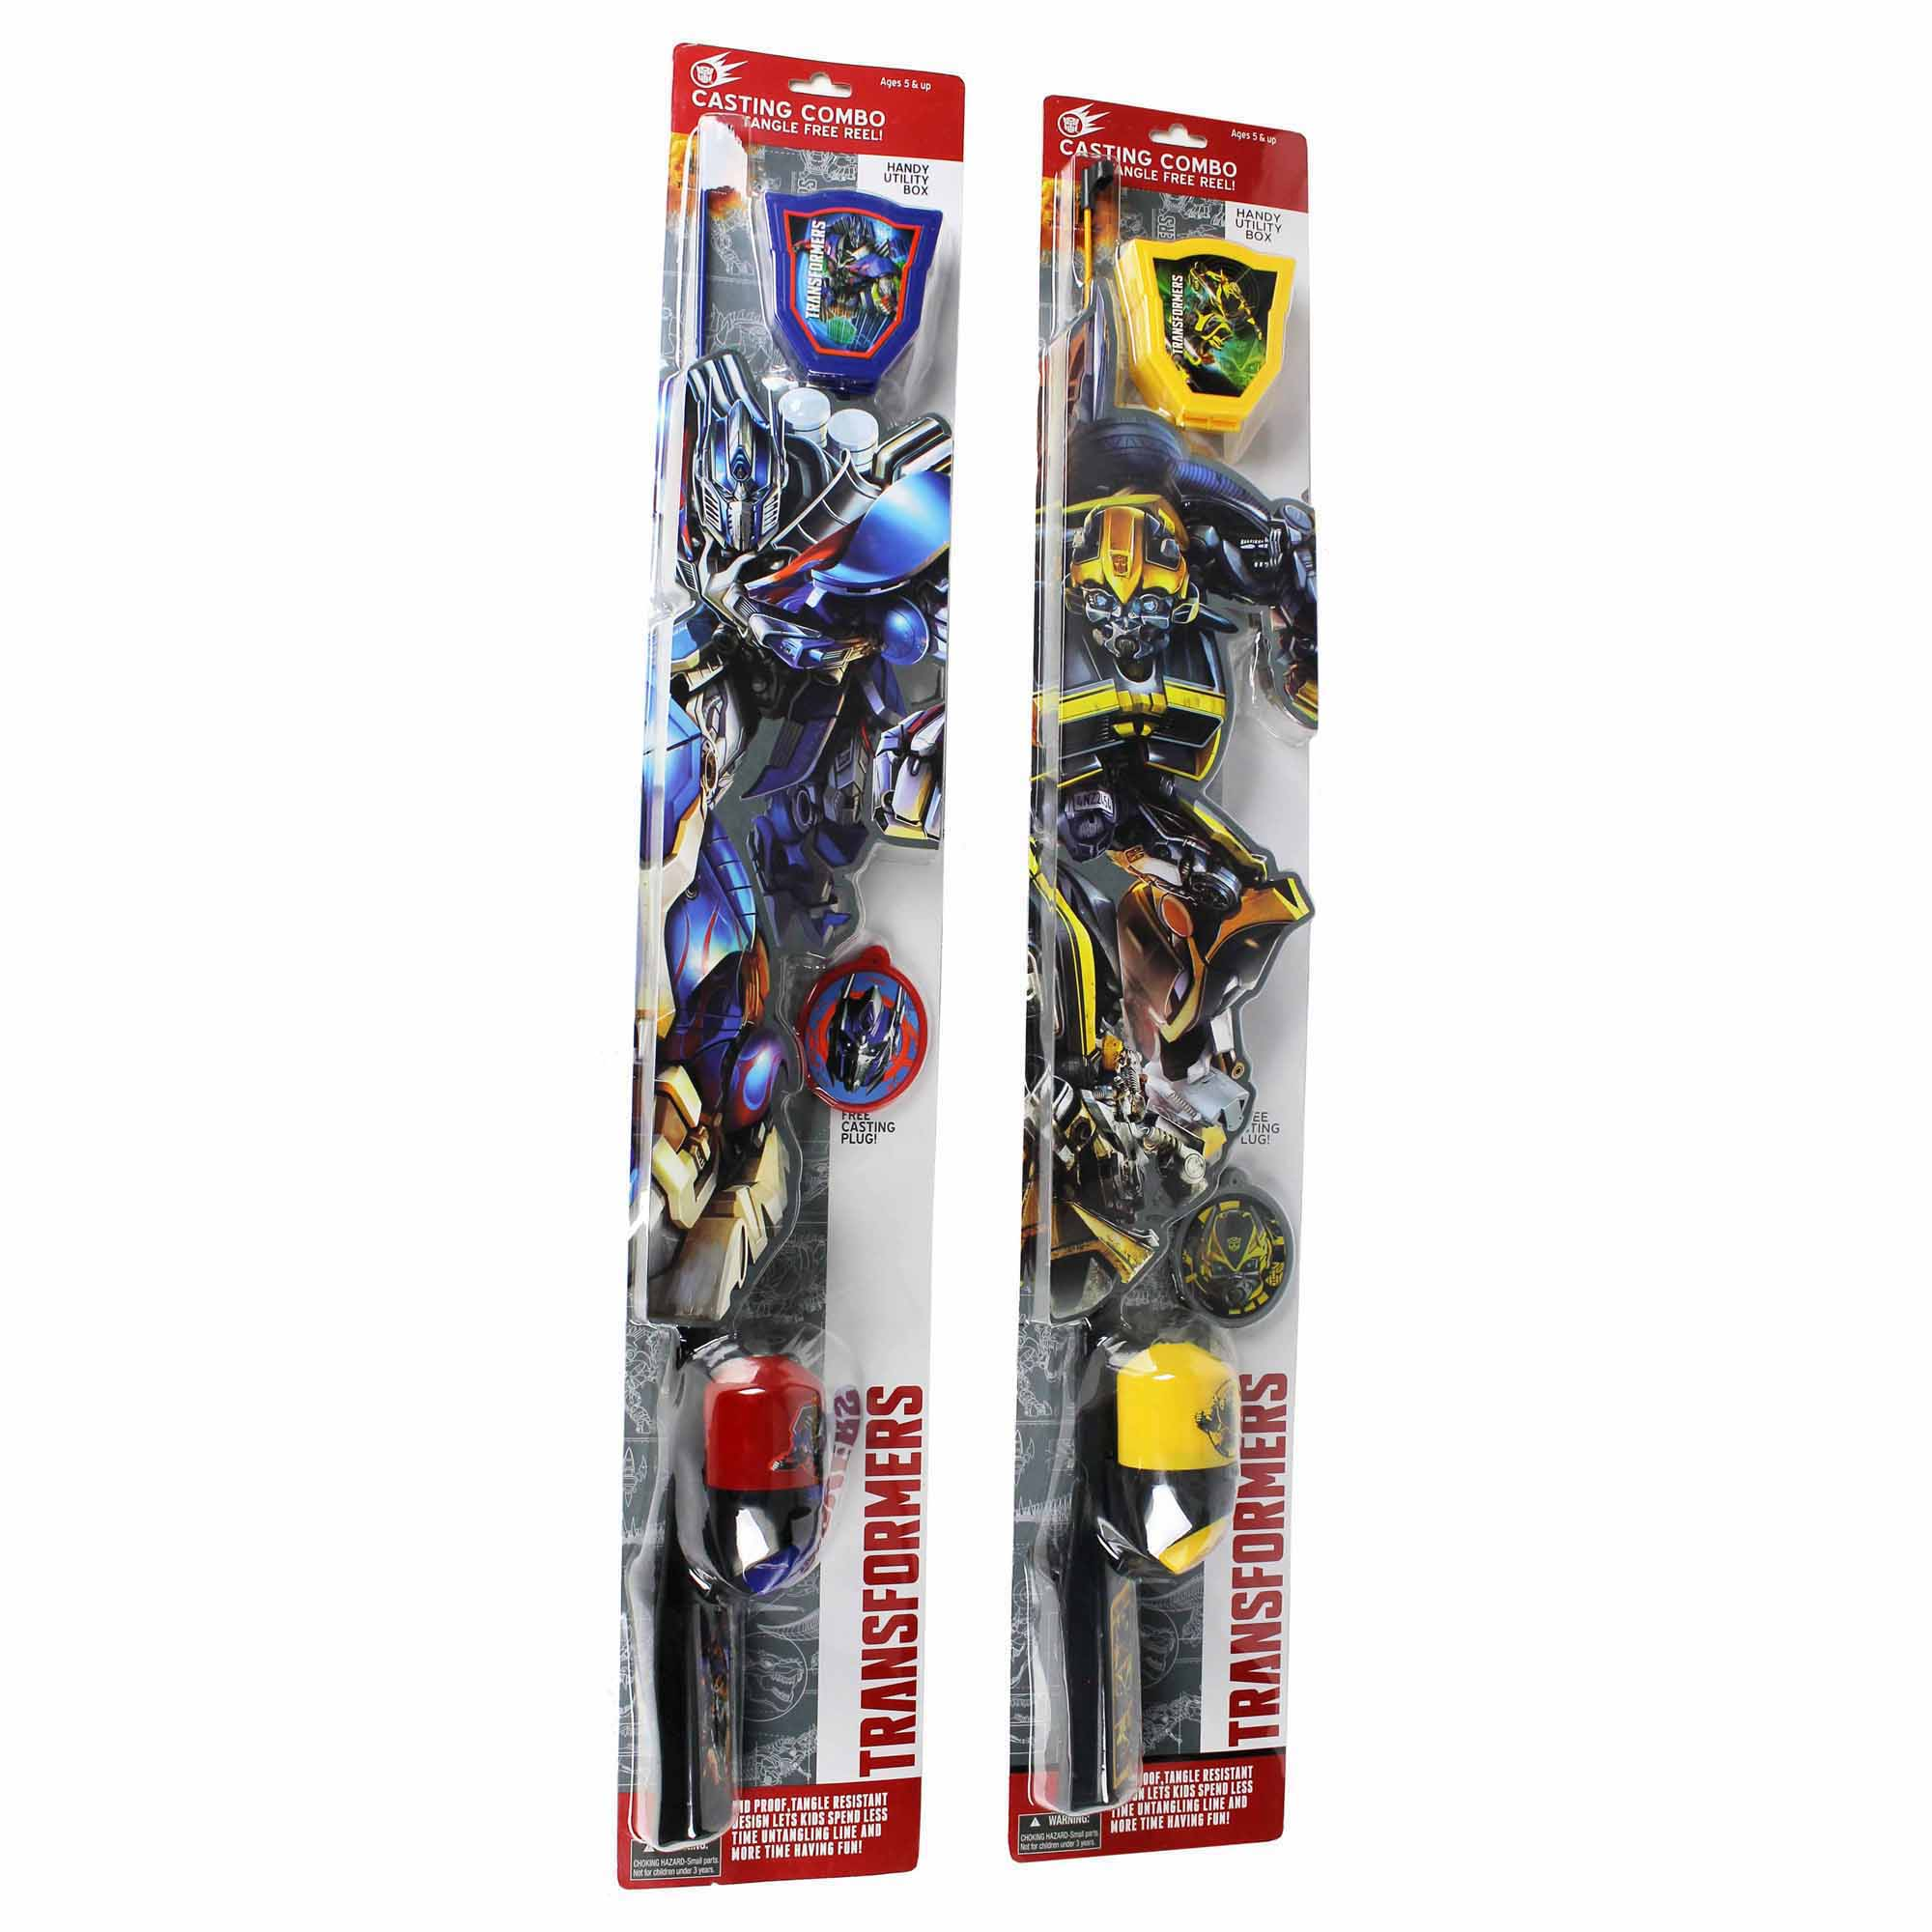 Transformers 4 Kid's Rod and Reel Combo